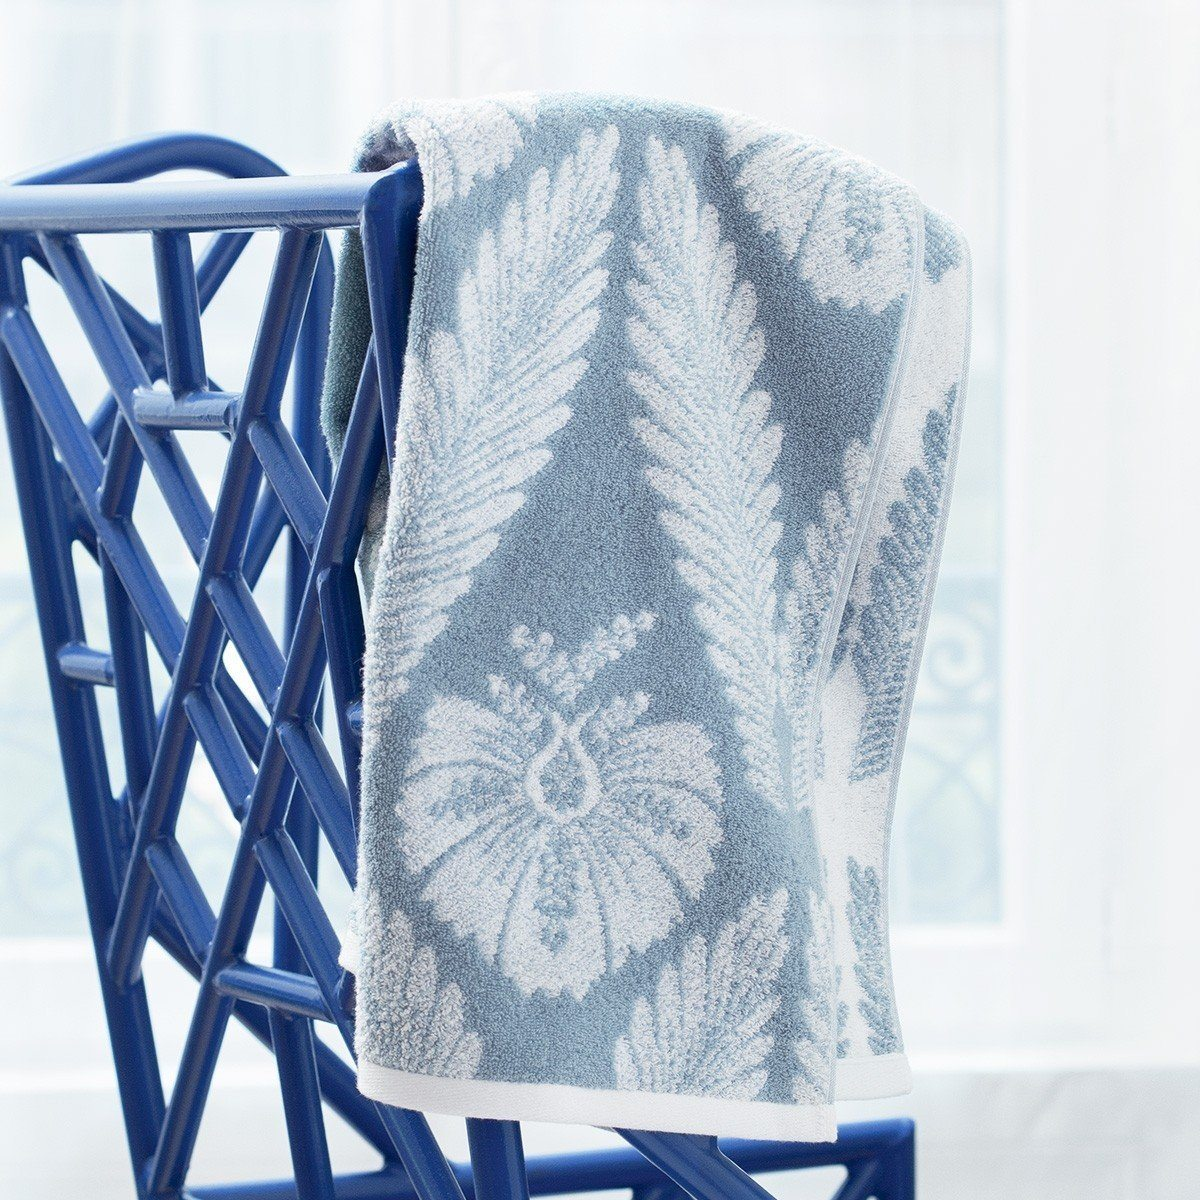 Yves Delorme Palmes Bath Towel Collection | Fig Linens and Home